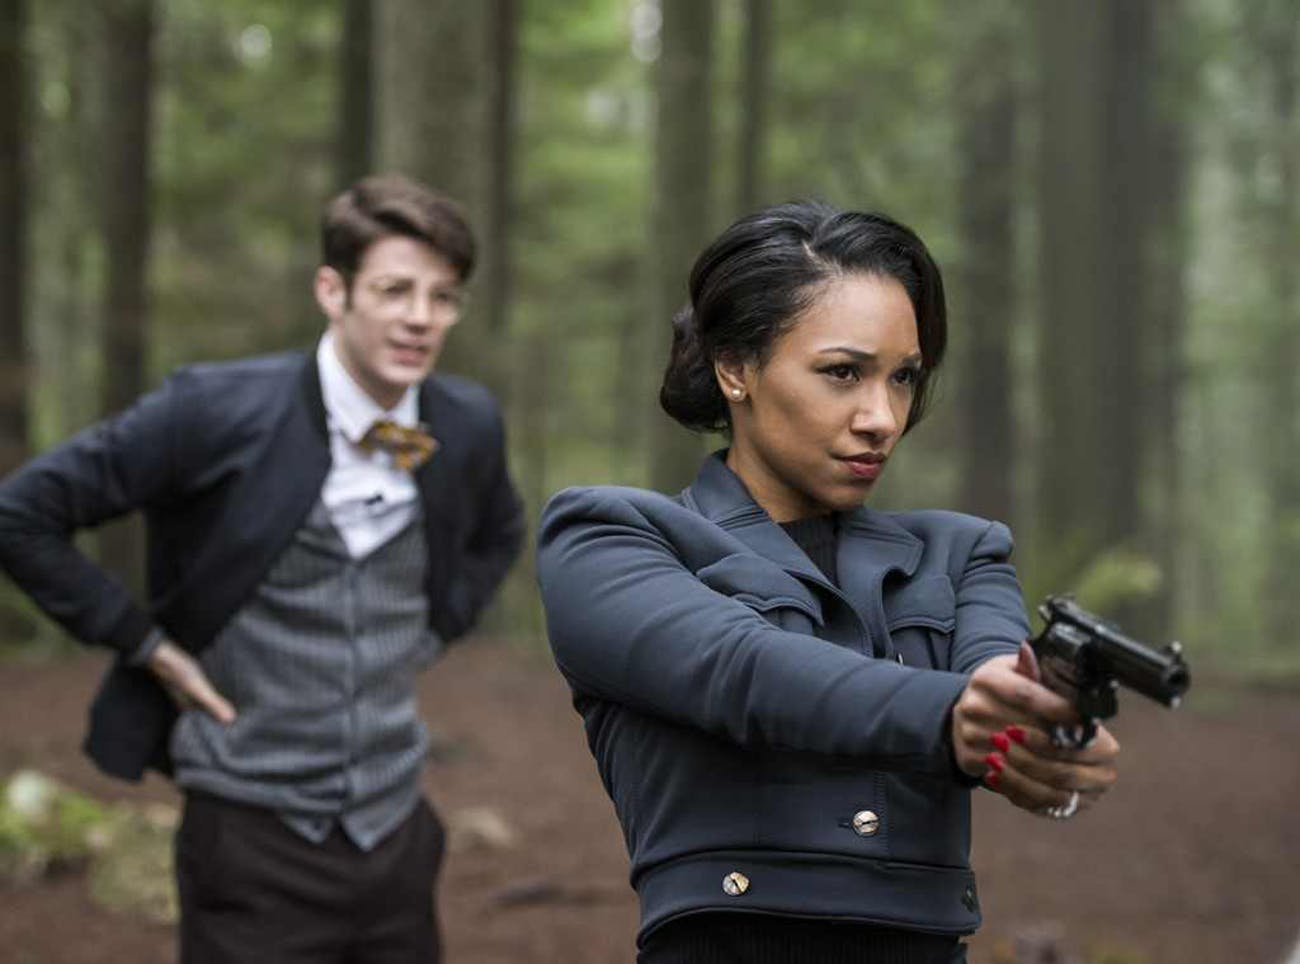 Earth-2 Iris West-Allen would be a valuable member of the team.